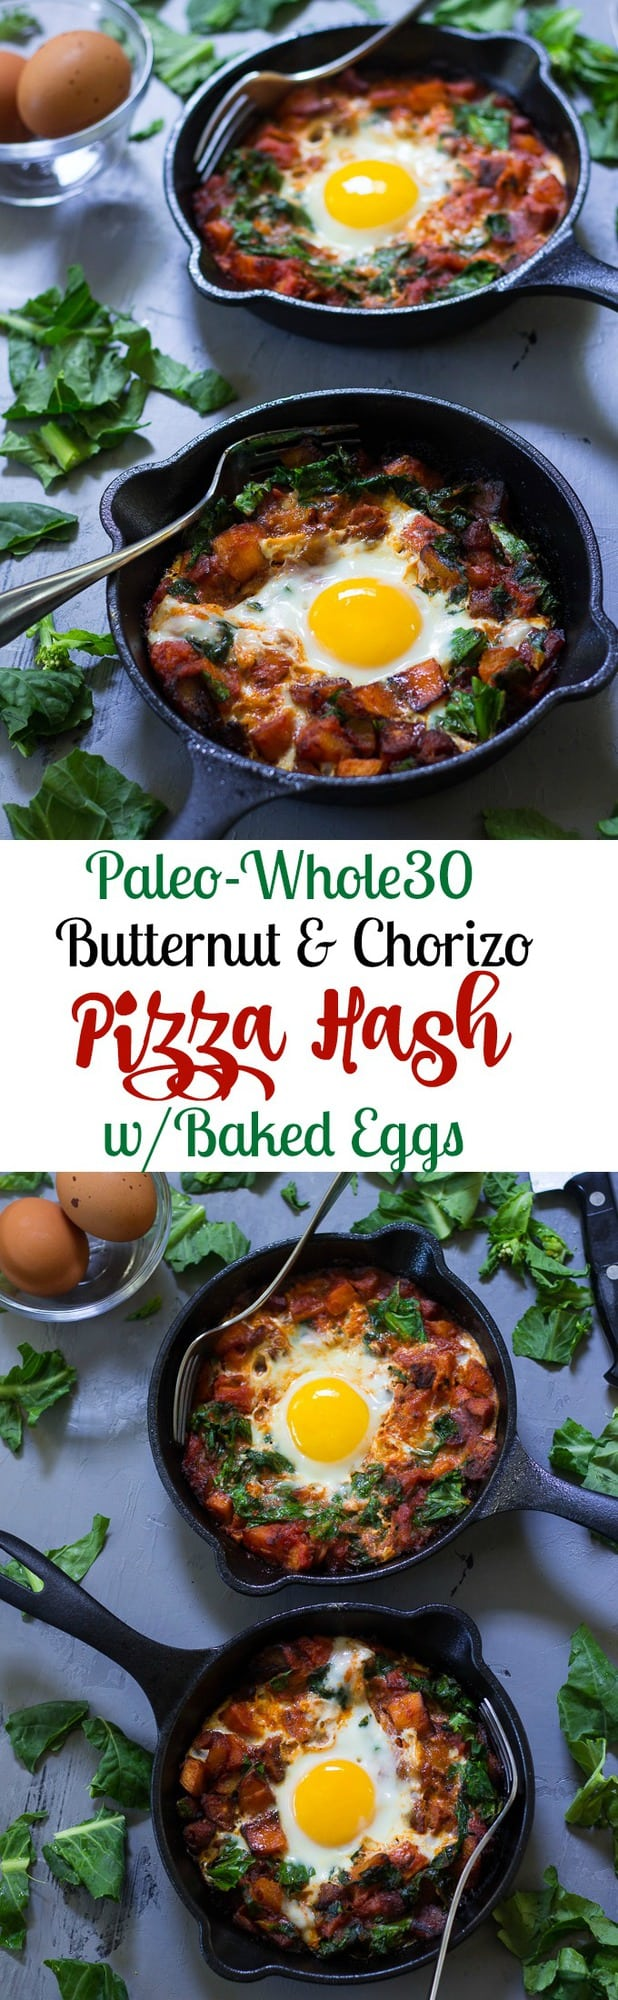 paleo-and-whole30-butternut-chorizo-pizza-hash-with-baked-eggs